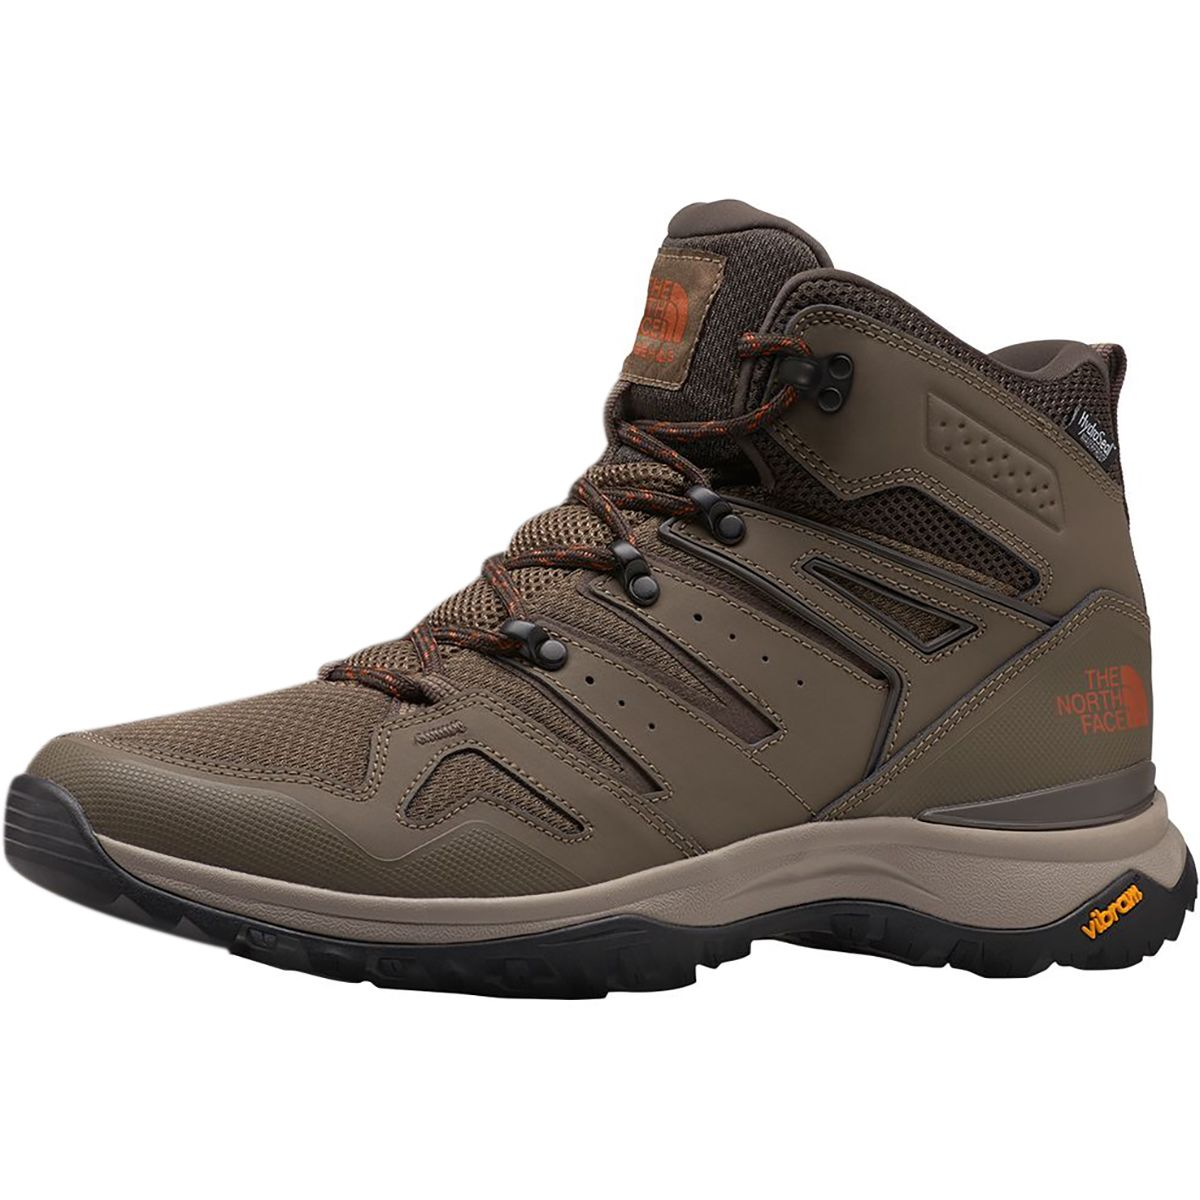 The North Face Hedgehog Fastpack II Mid